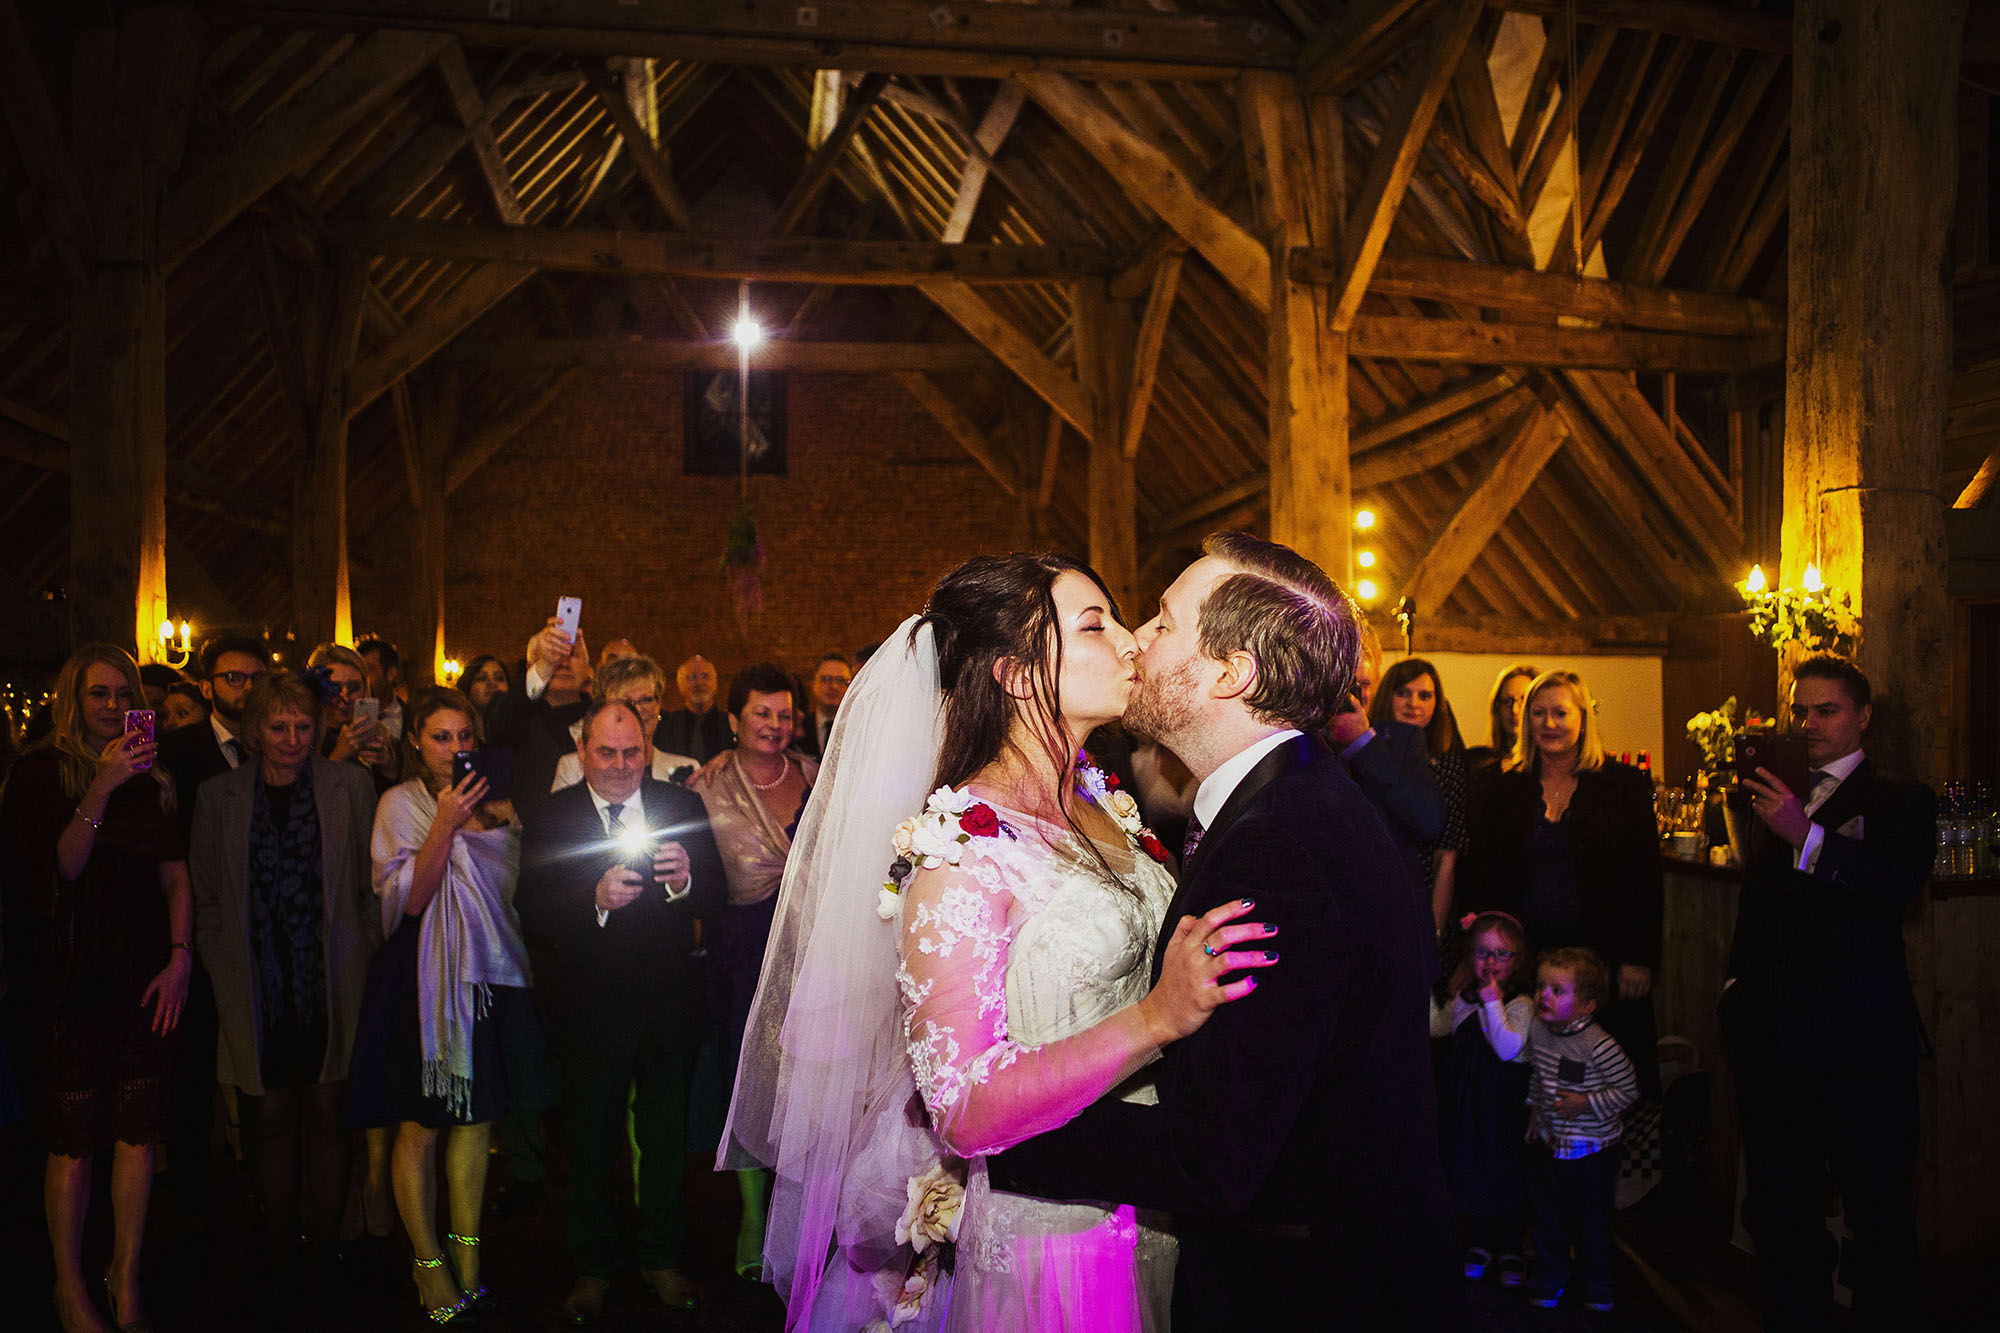 bride and groom first dance at barford park wedding venue in wiltshire